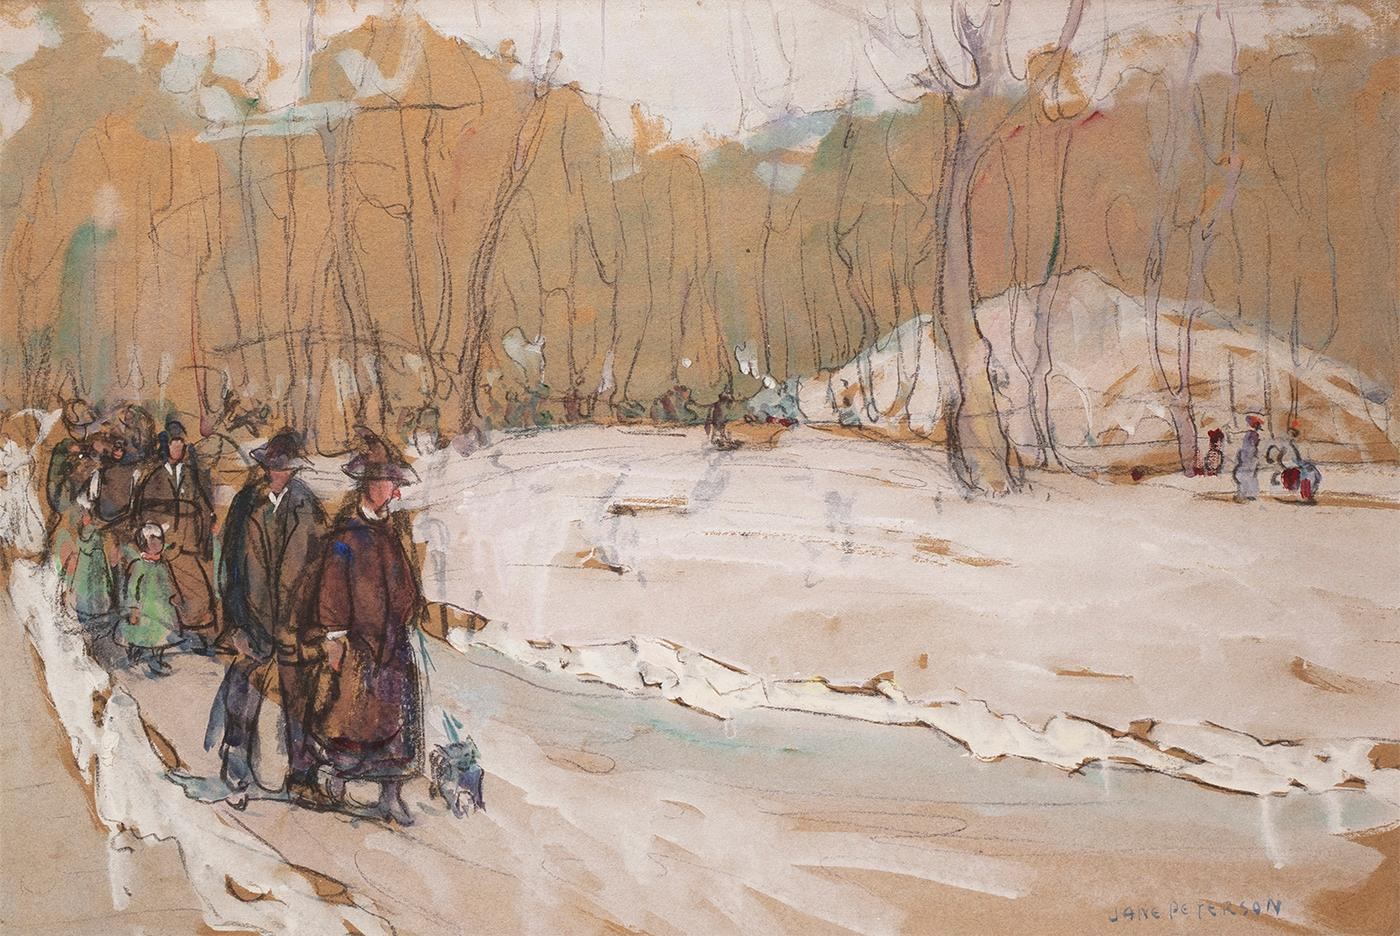 Strolling in the Park, Winter